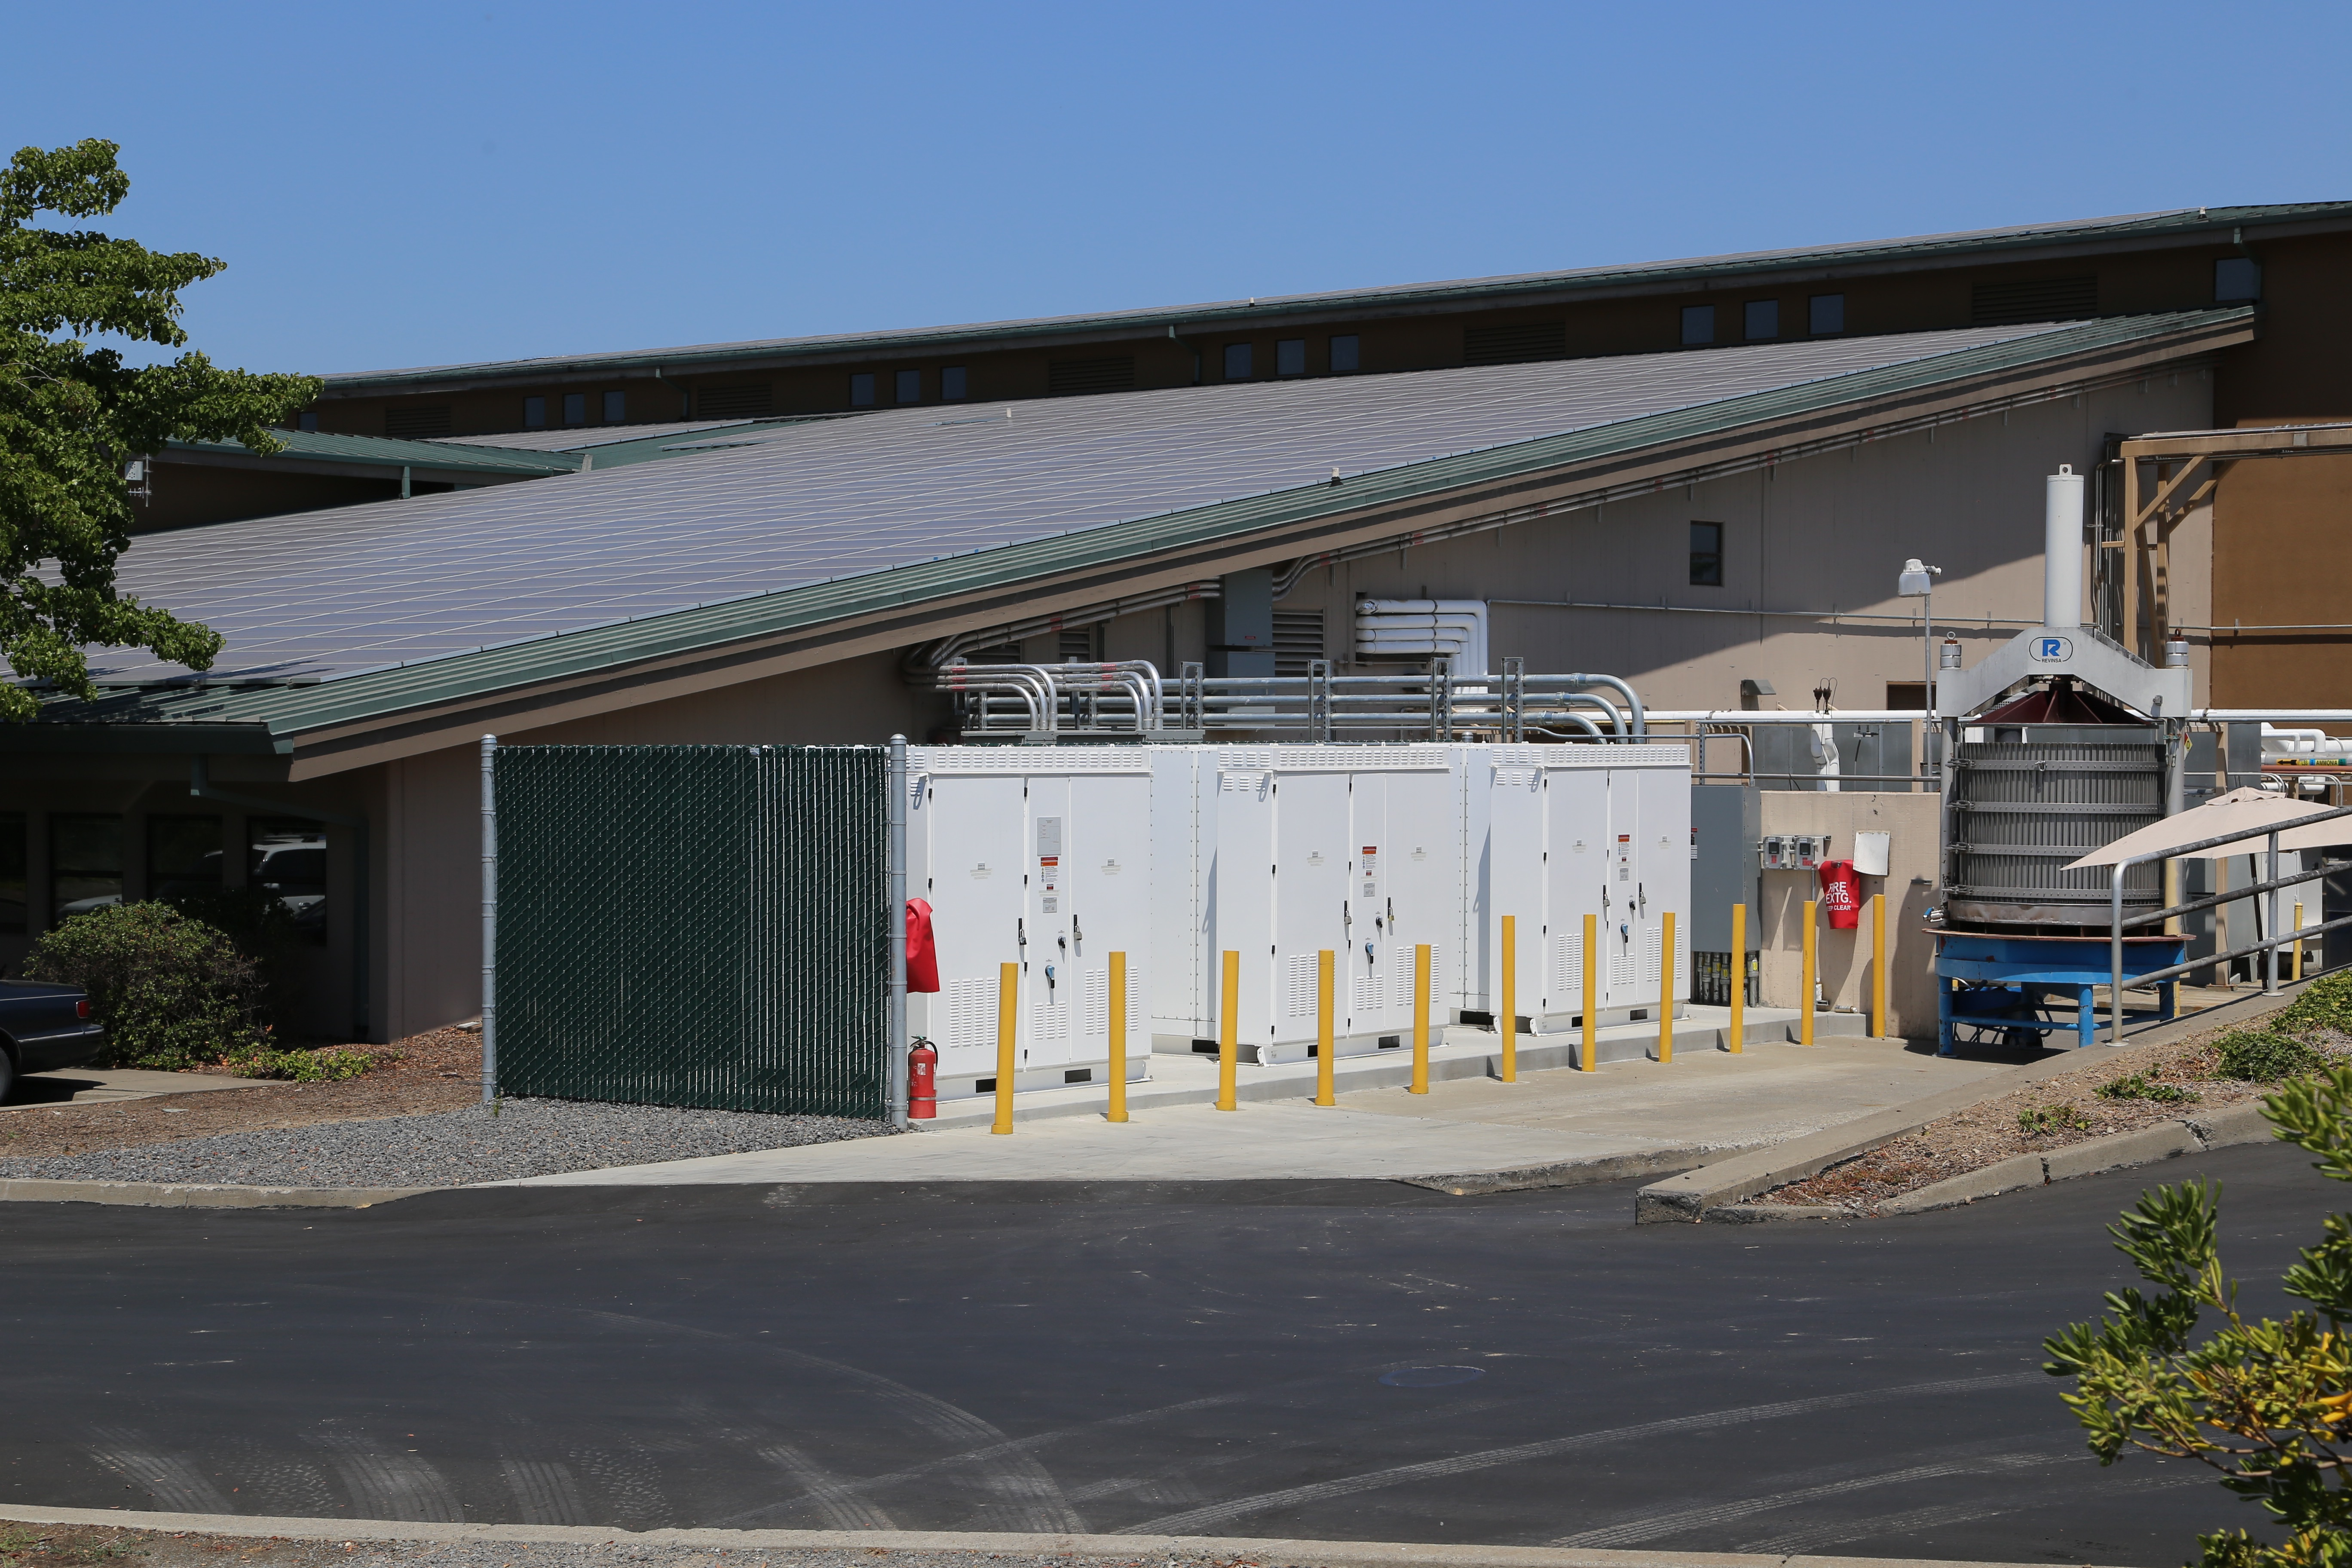 Tesla batteries installed at the La Crema Winery in Windsor, Calif. The roof is also covered in solar panels.